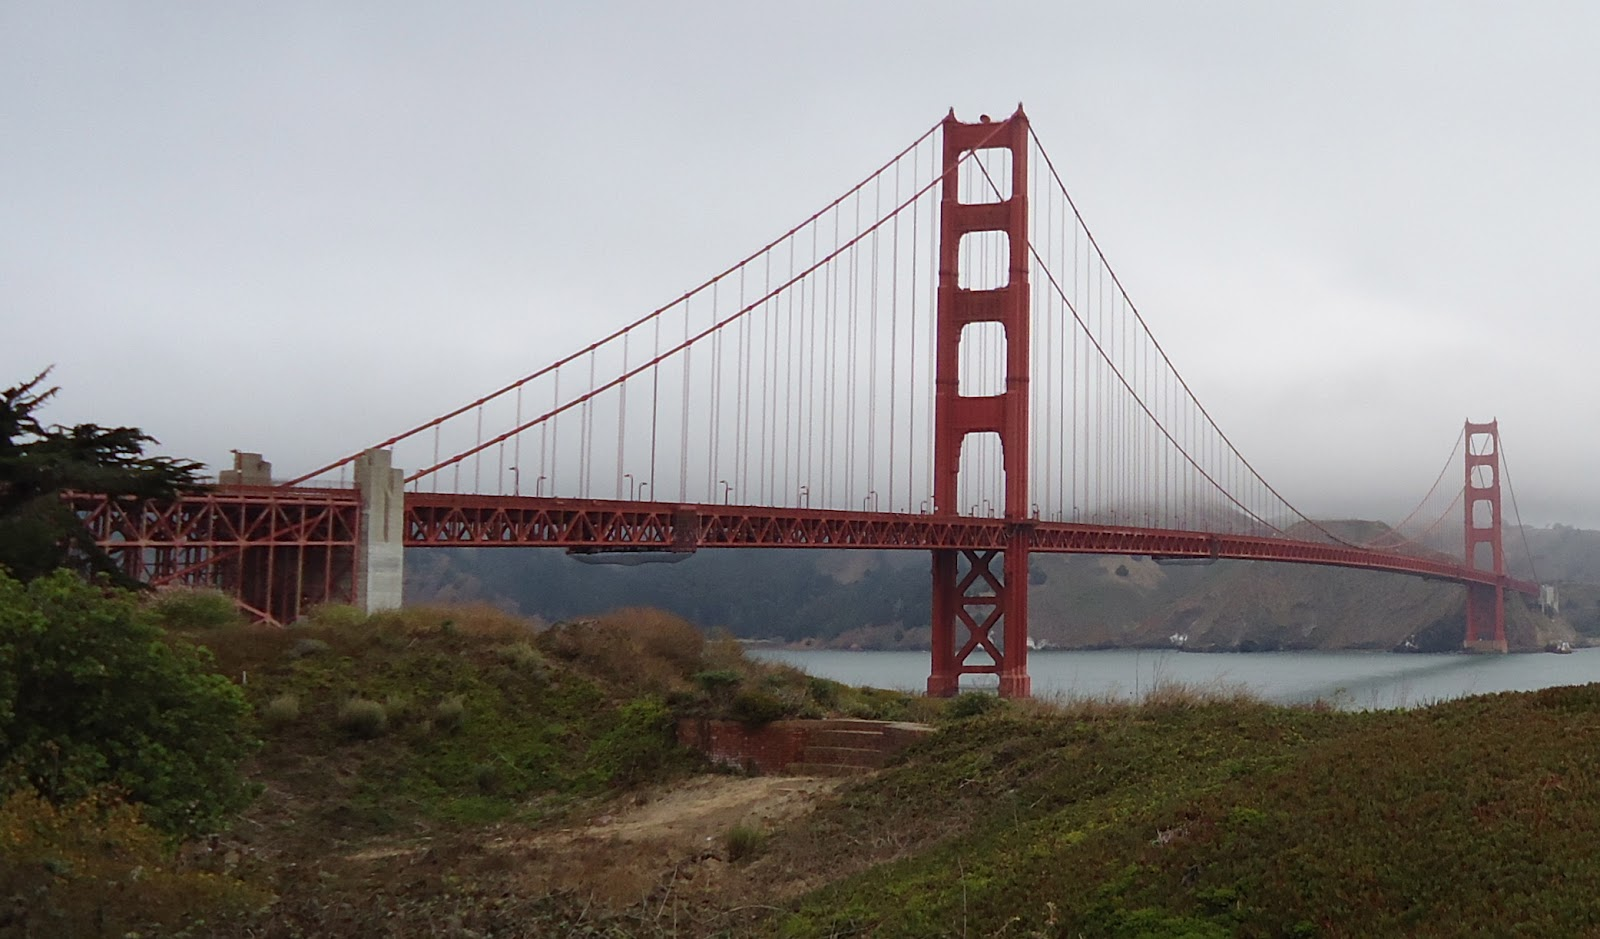 the golden gate bridge essay The golden gate bridge that was completed in 1937 is a suspense on bridge connecting the san francisco bay with the pacific ocean the golden gate bridge is considered to be a globally renowned representation of san francisco and california.